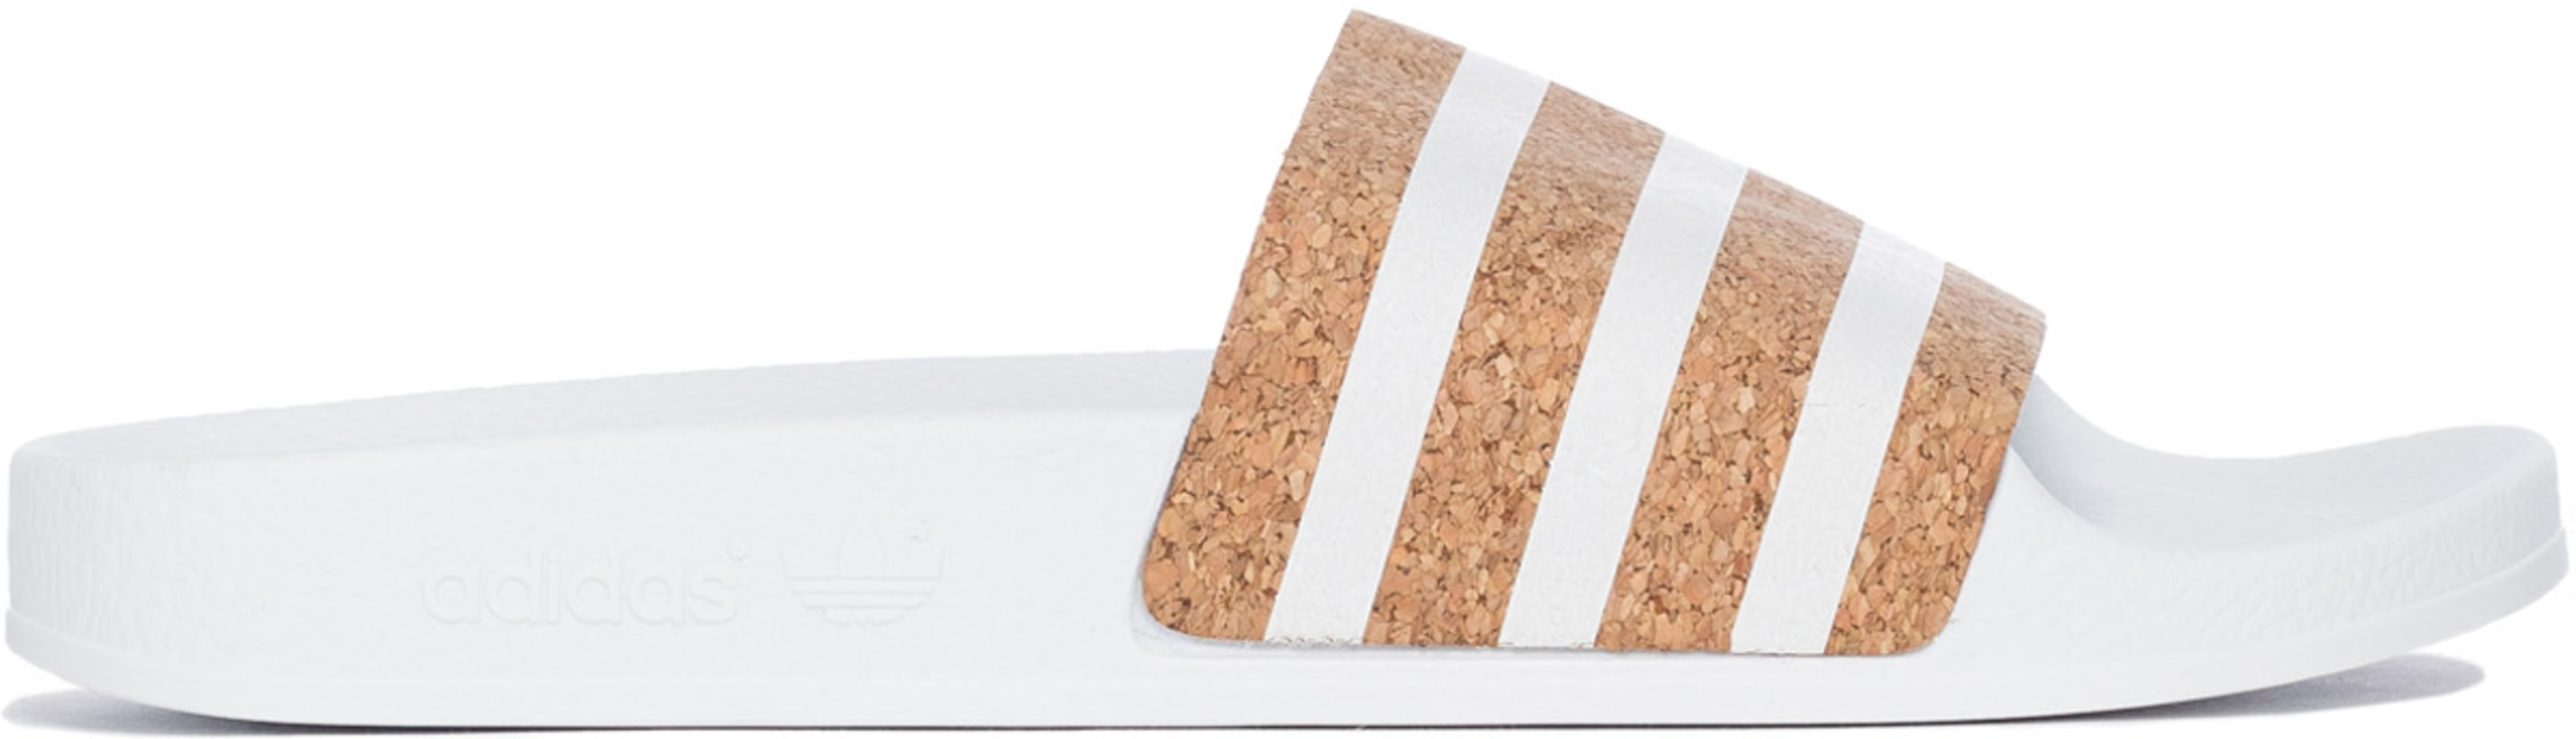 3444c552a60a adidas Originals  Adilette Slides - White White Supplier Color ...